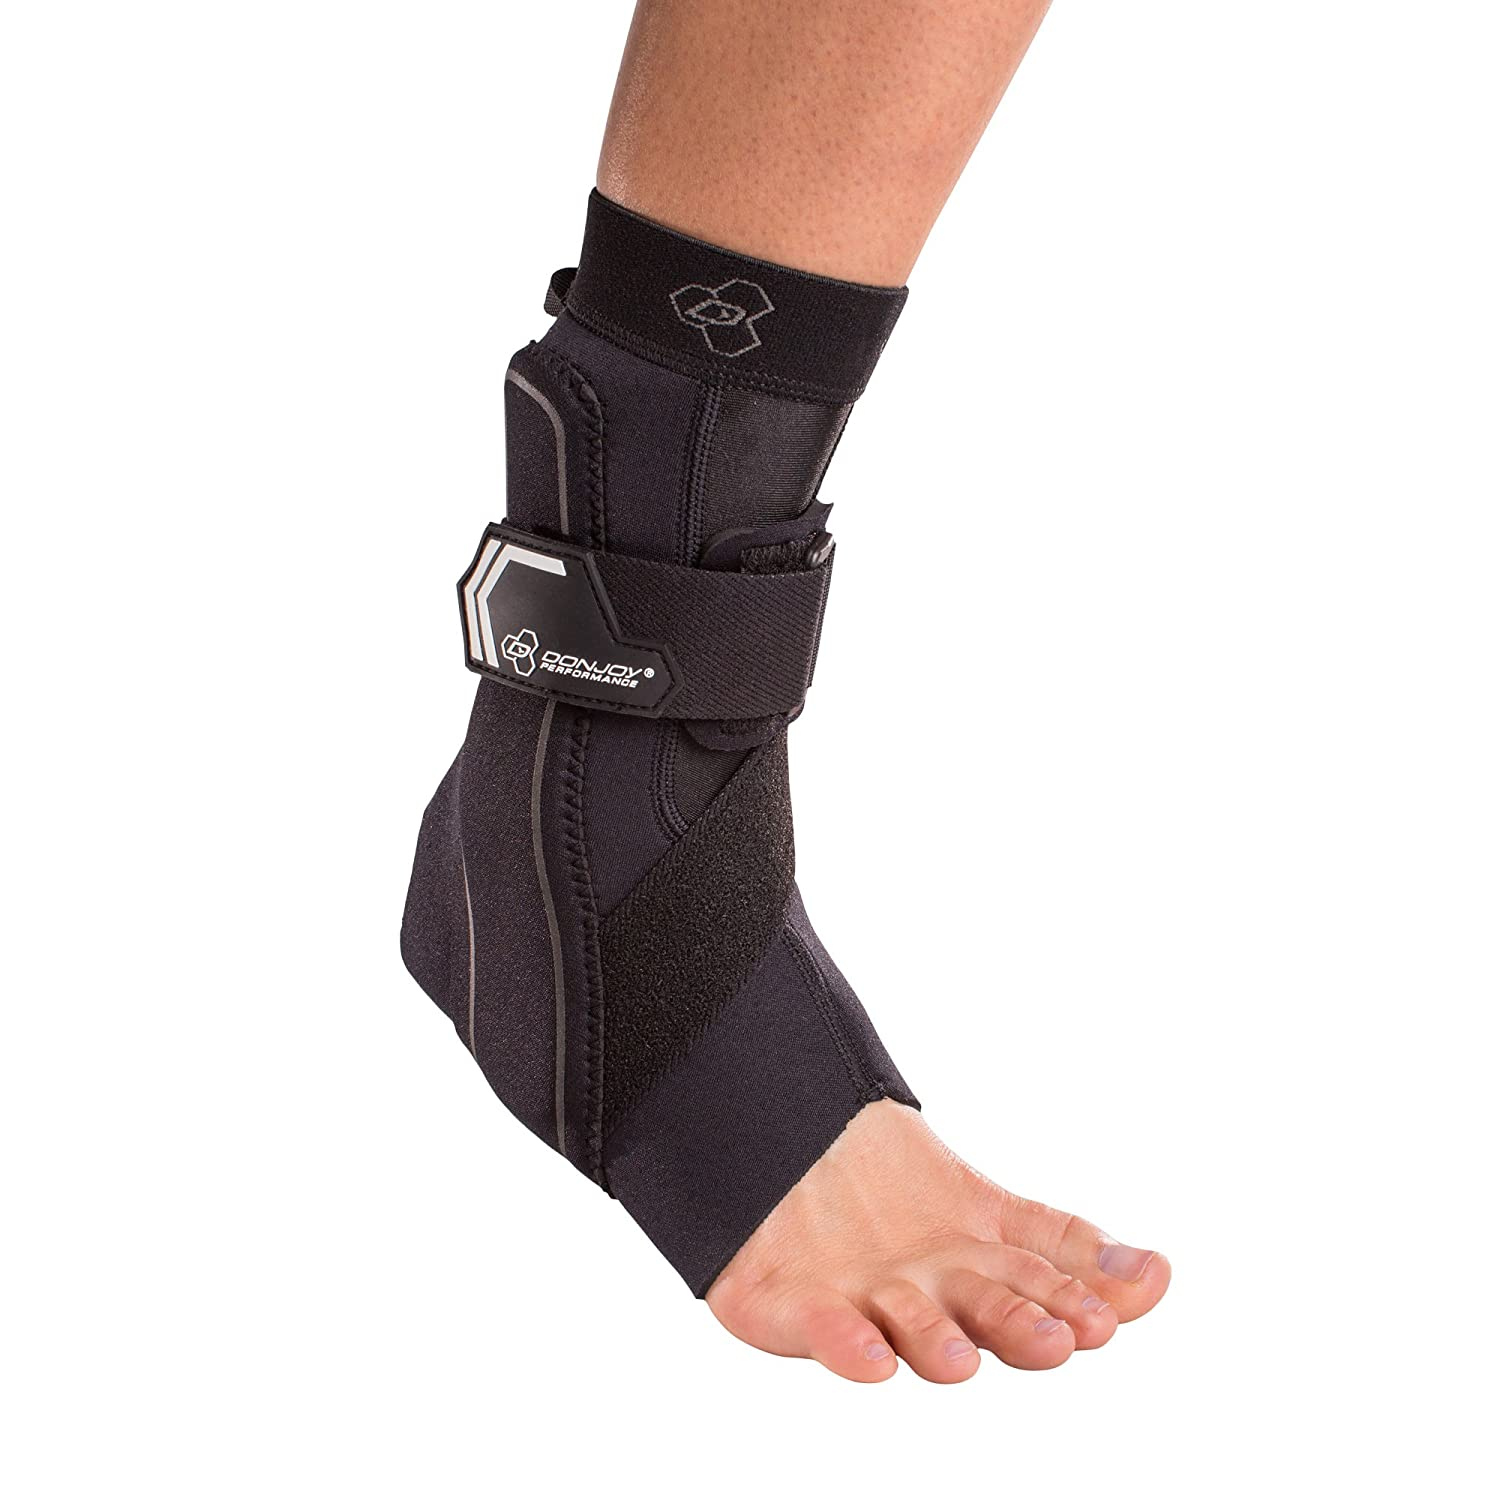 0fb4974e8a DonJoy Performance Bionic Ankle Brace – 60° Stay w/Stirrup for Mild to  Moderate